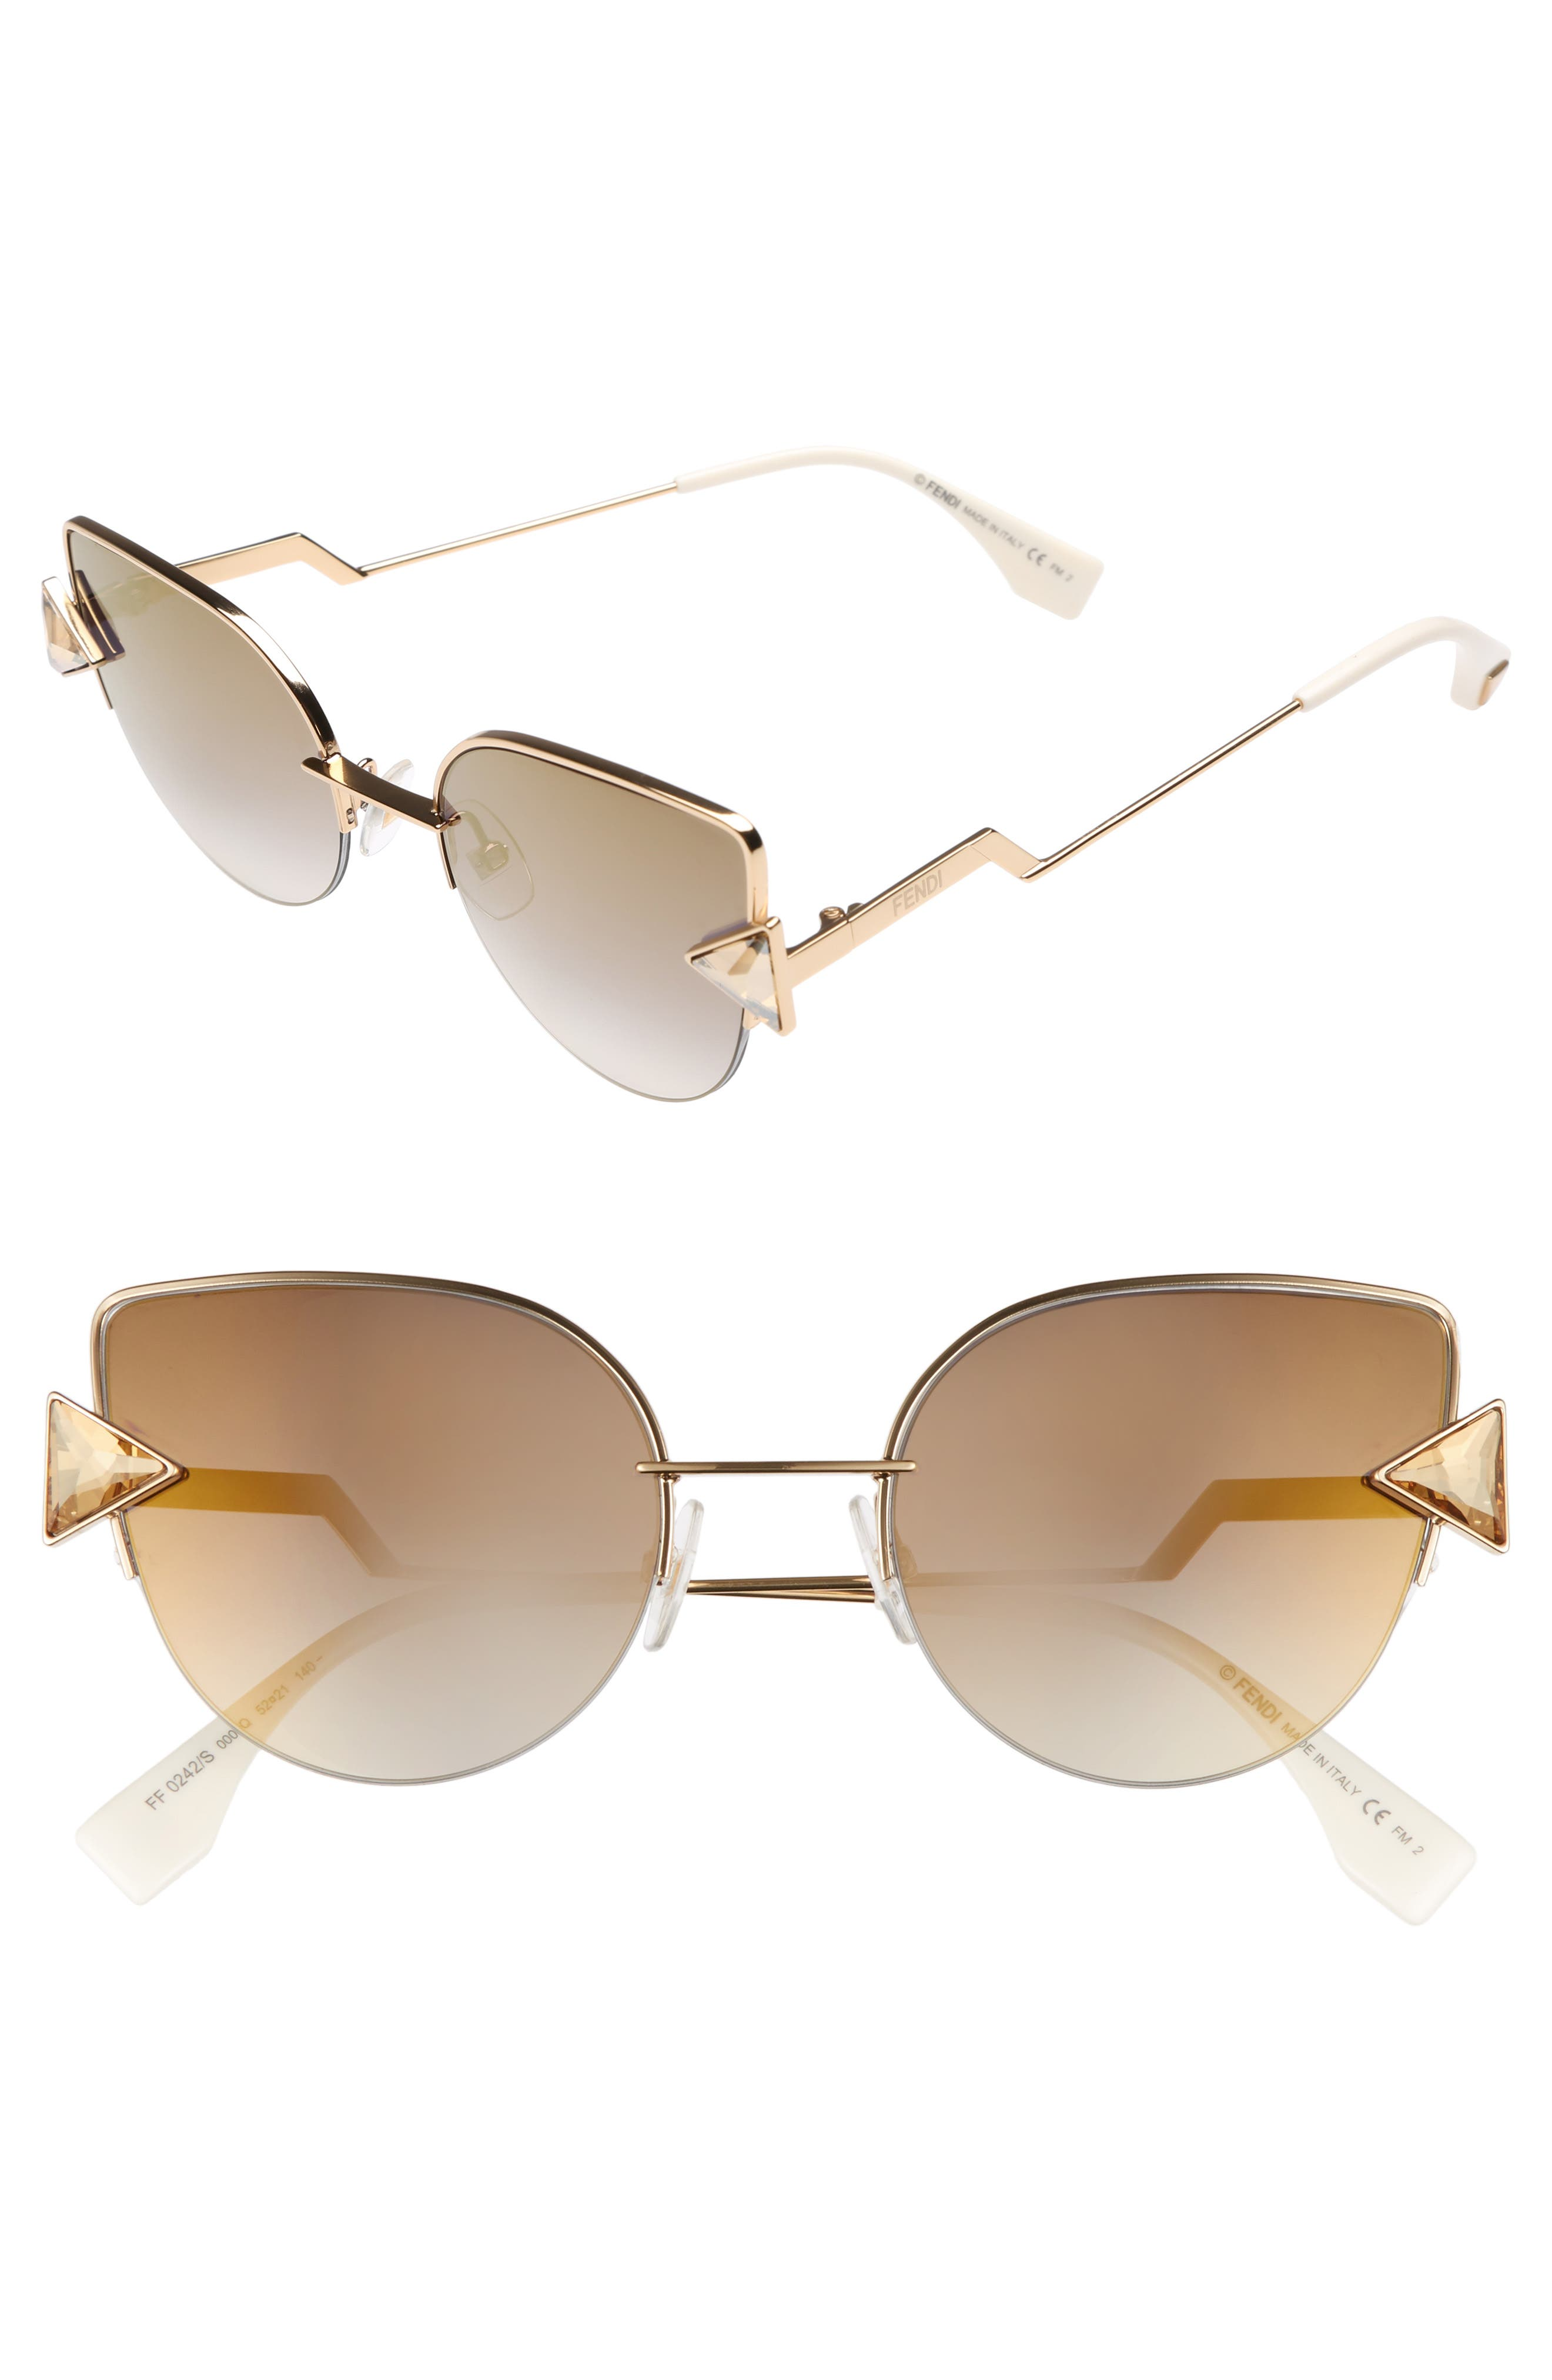 d950d0c5f8c Fendi Sunglasses for Women